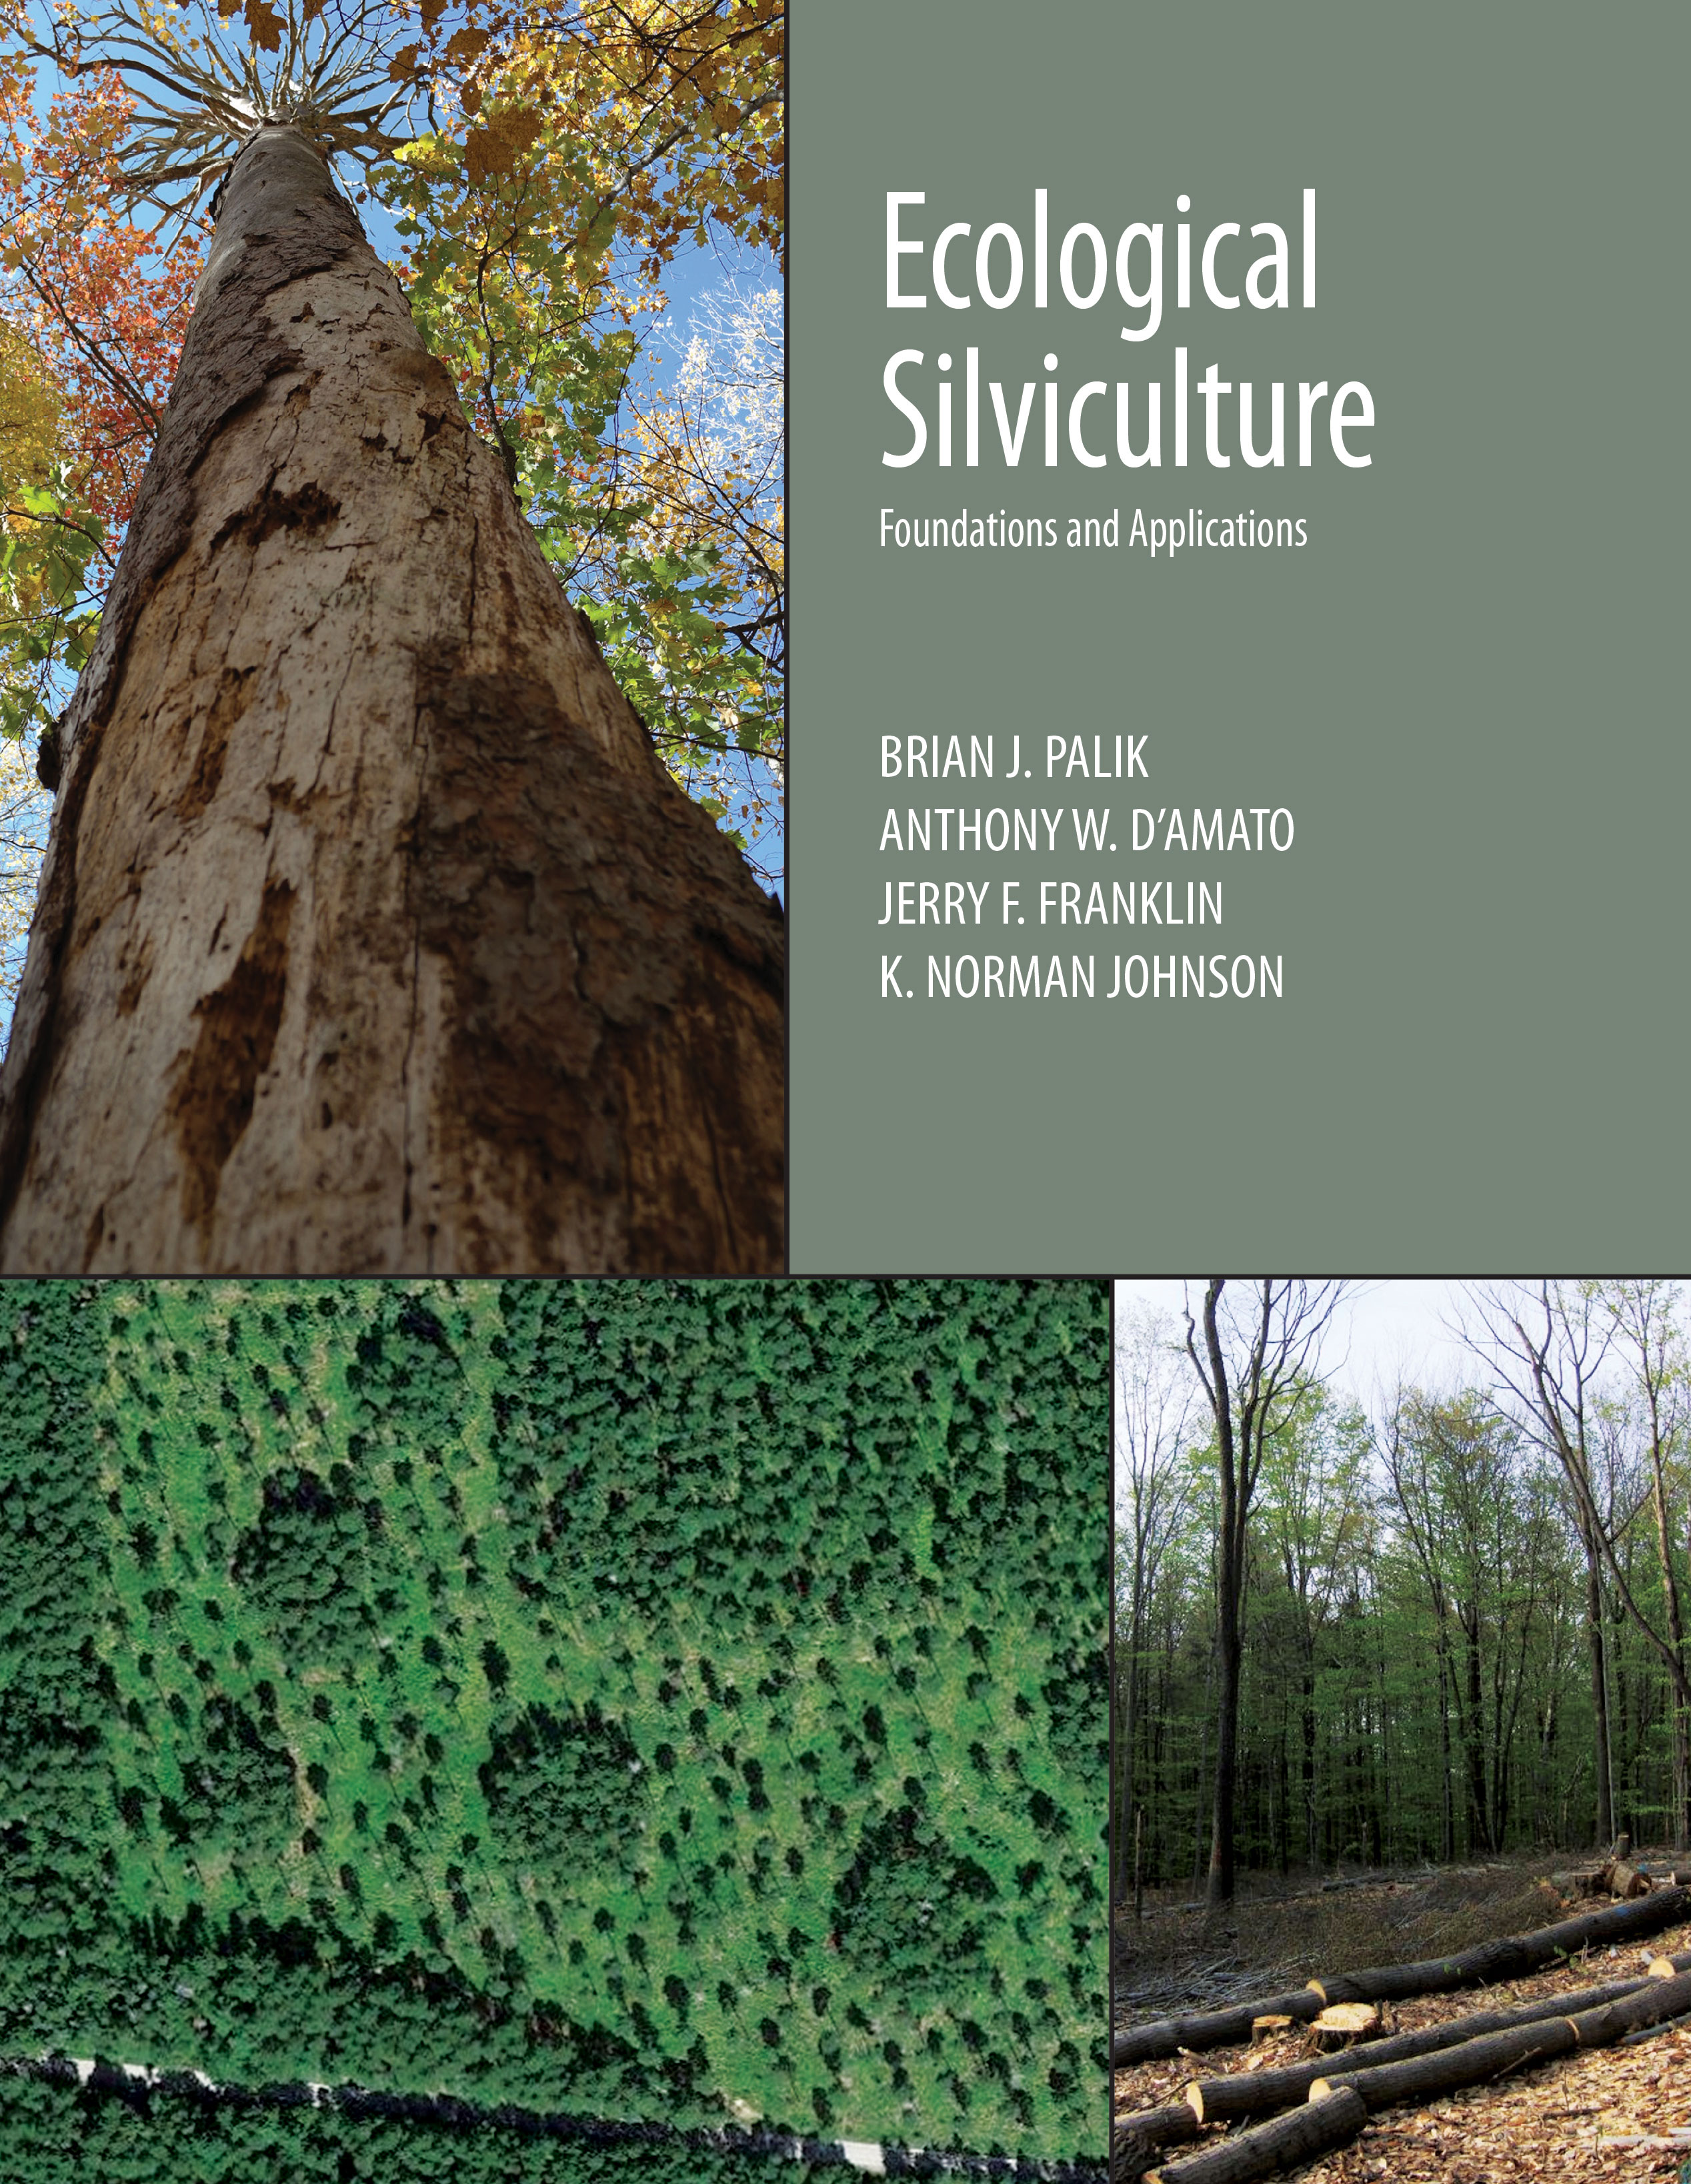 Ecological Silviculture: Foundations and Applications by Brian J. Palik, Anthony W. D